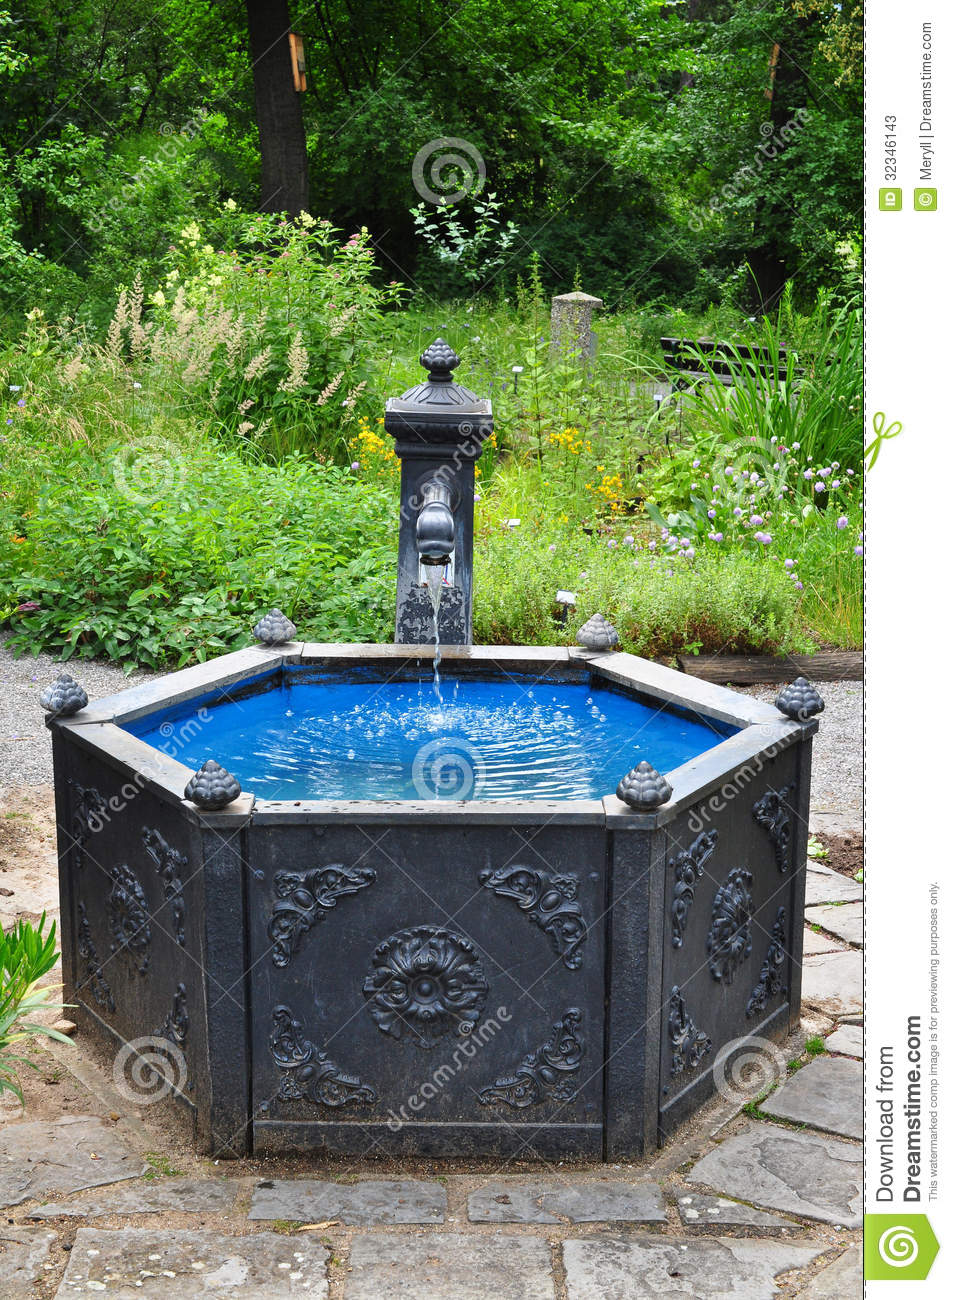 water well stock image image of garden outdoor fountain